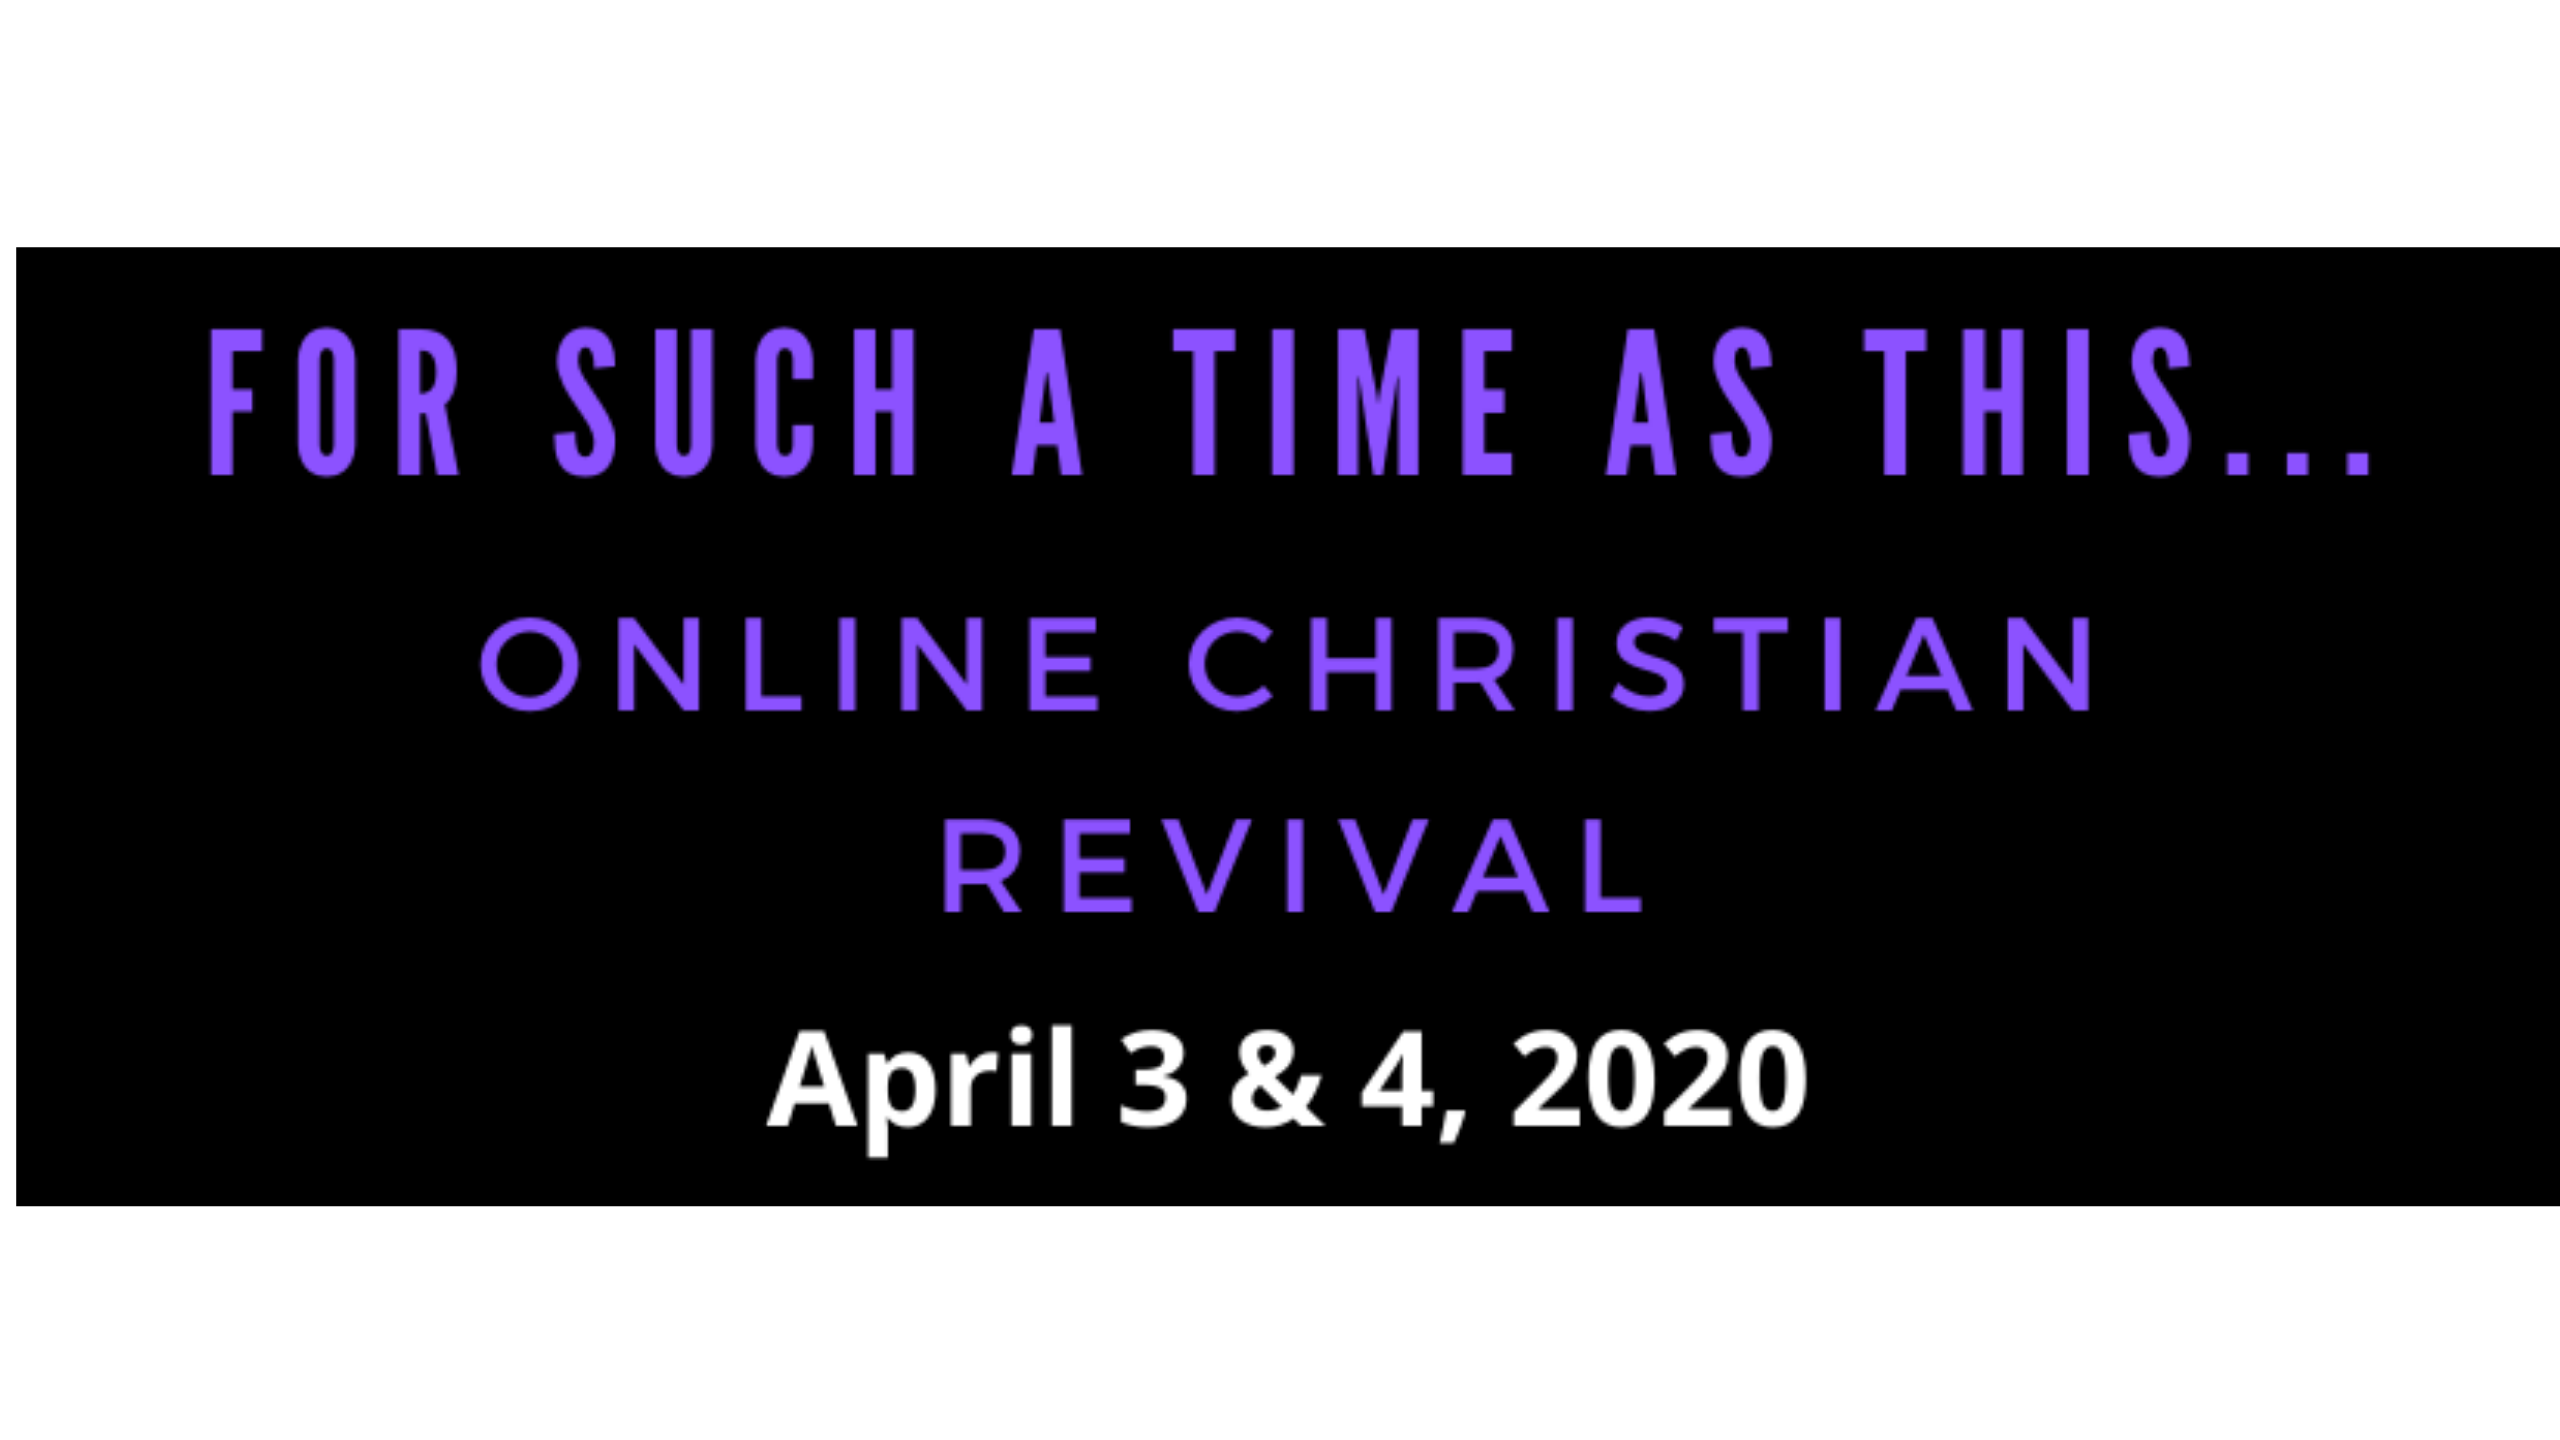 """Online Christian Revival """"For Such a Time as This..."""" to Provide Encouragement and Hope"""